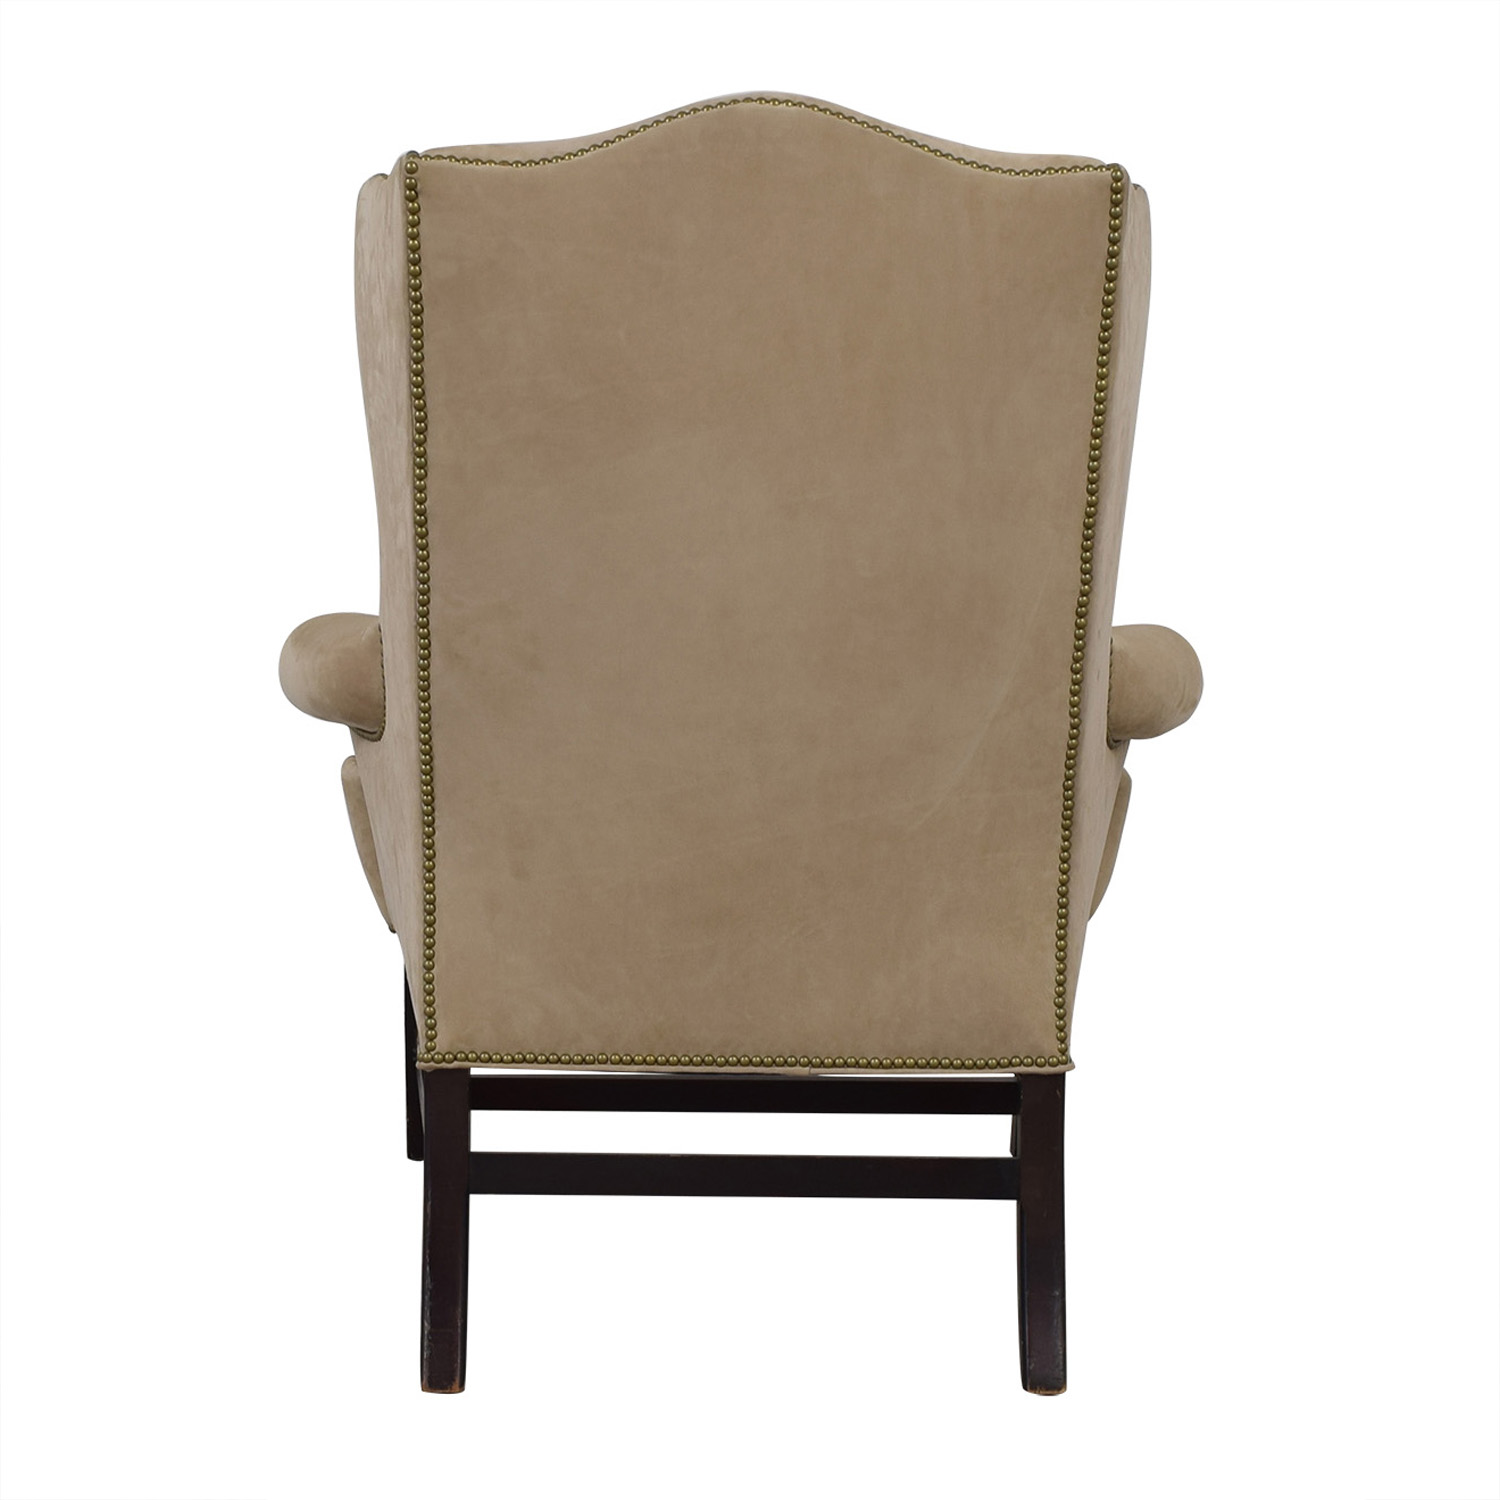 Used Wingback Chairs 79 Off Ralph Lauren Home Ralph Lauren Home Beige Nailhead Wingback Chair Chairs